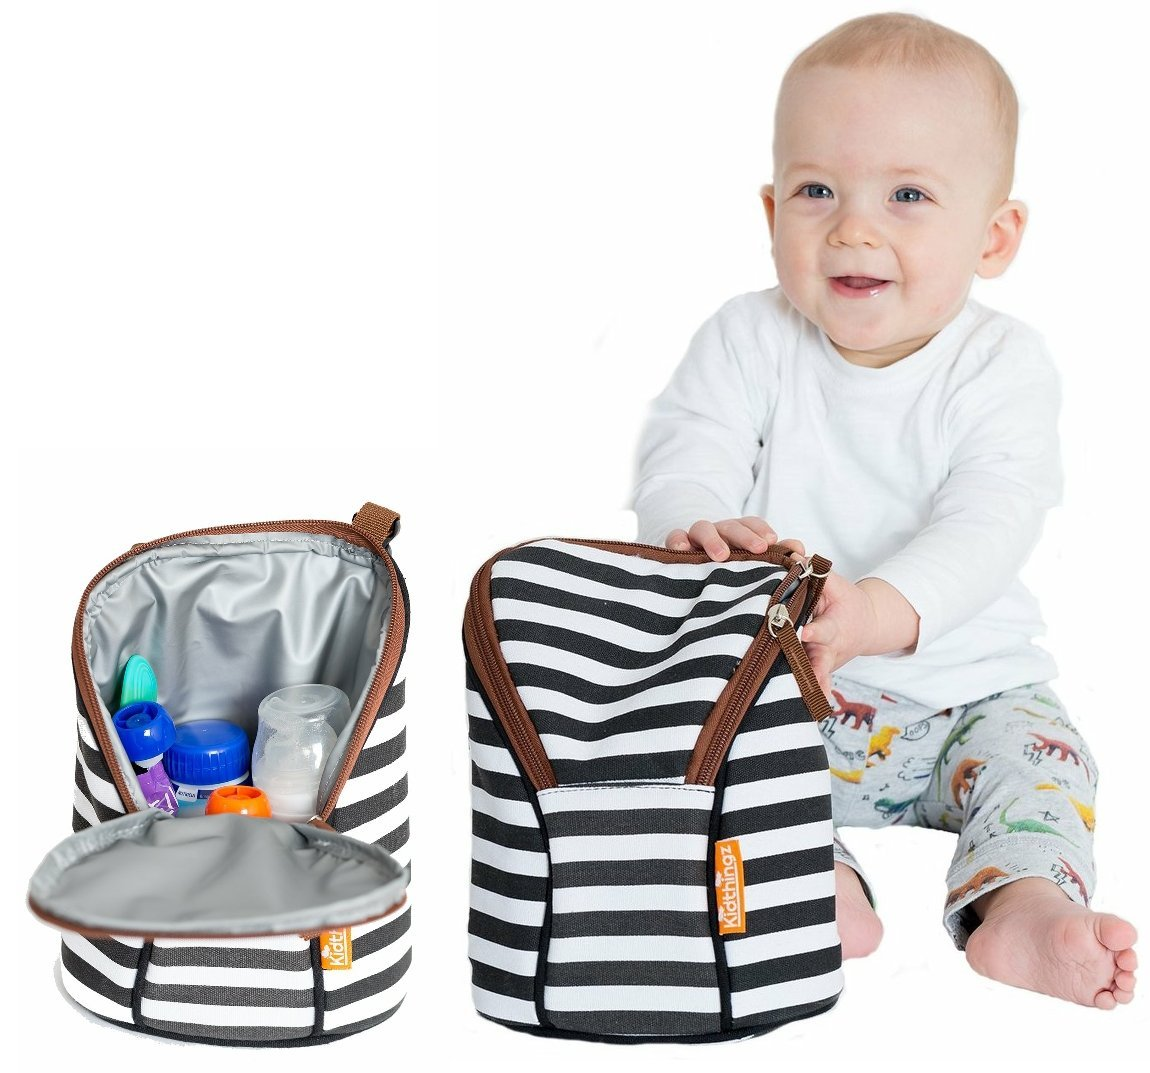 Kidthingz Double Bottle Bag Insulated- Easy to Take Anywhere Color Fast Treated, Looks Great for Baby Formula, Breast Milk, Sports Drink - Water Bottle Holder by Kidthingz (Image #3)